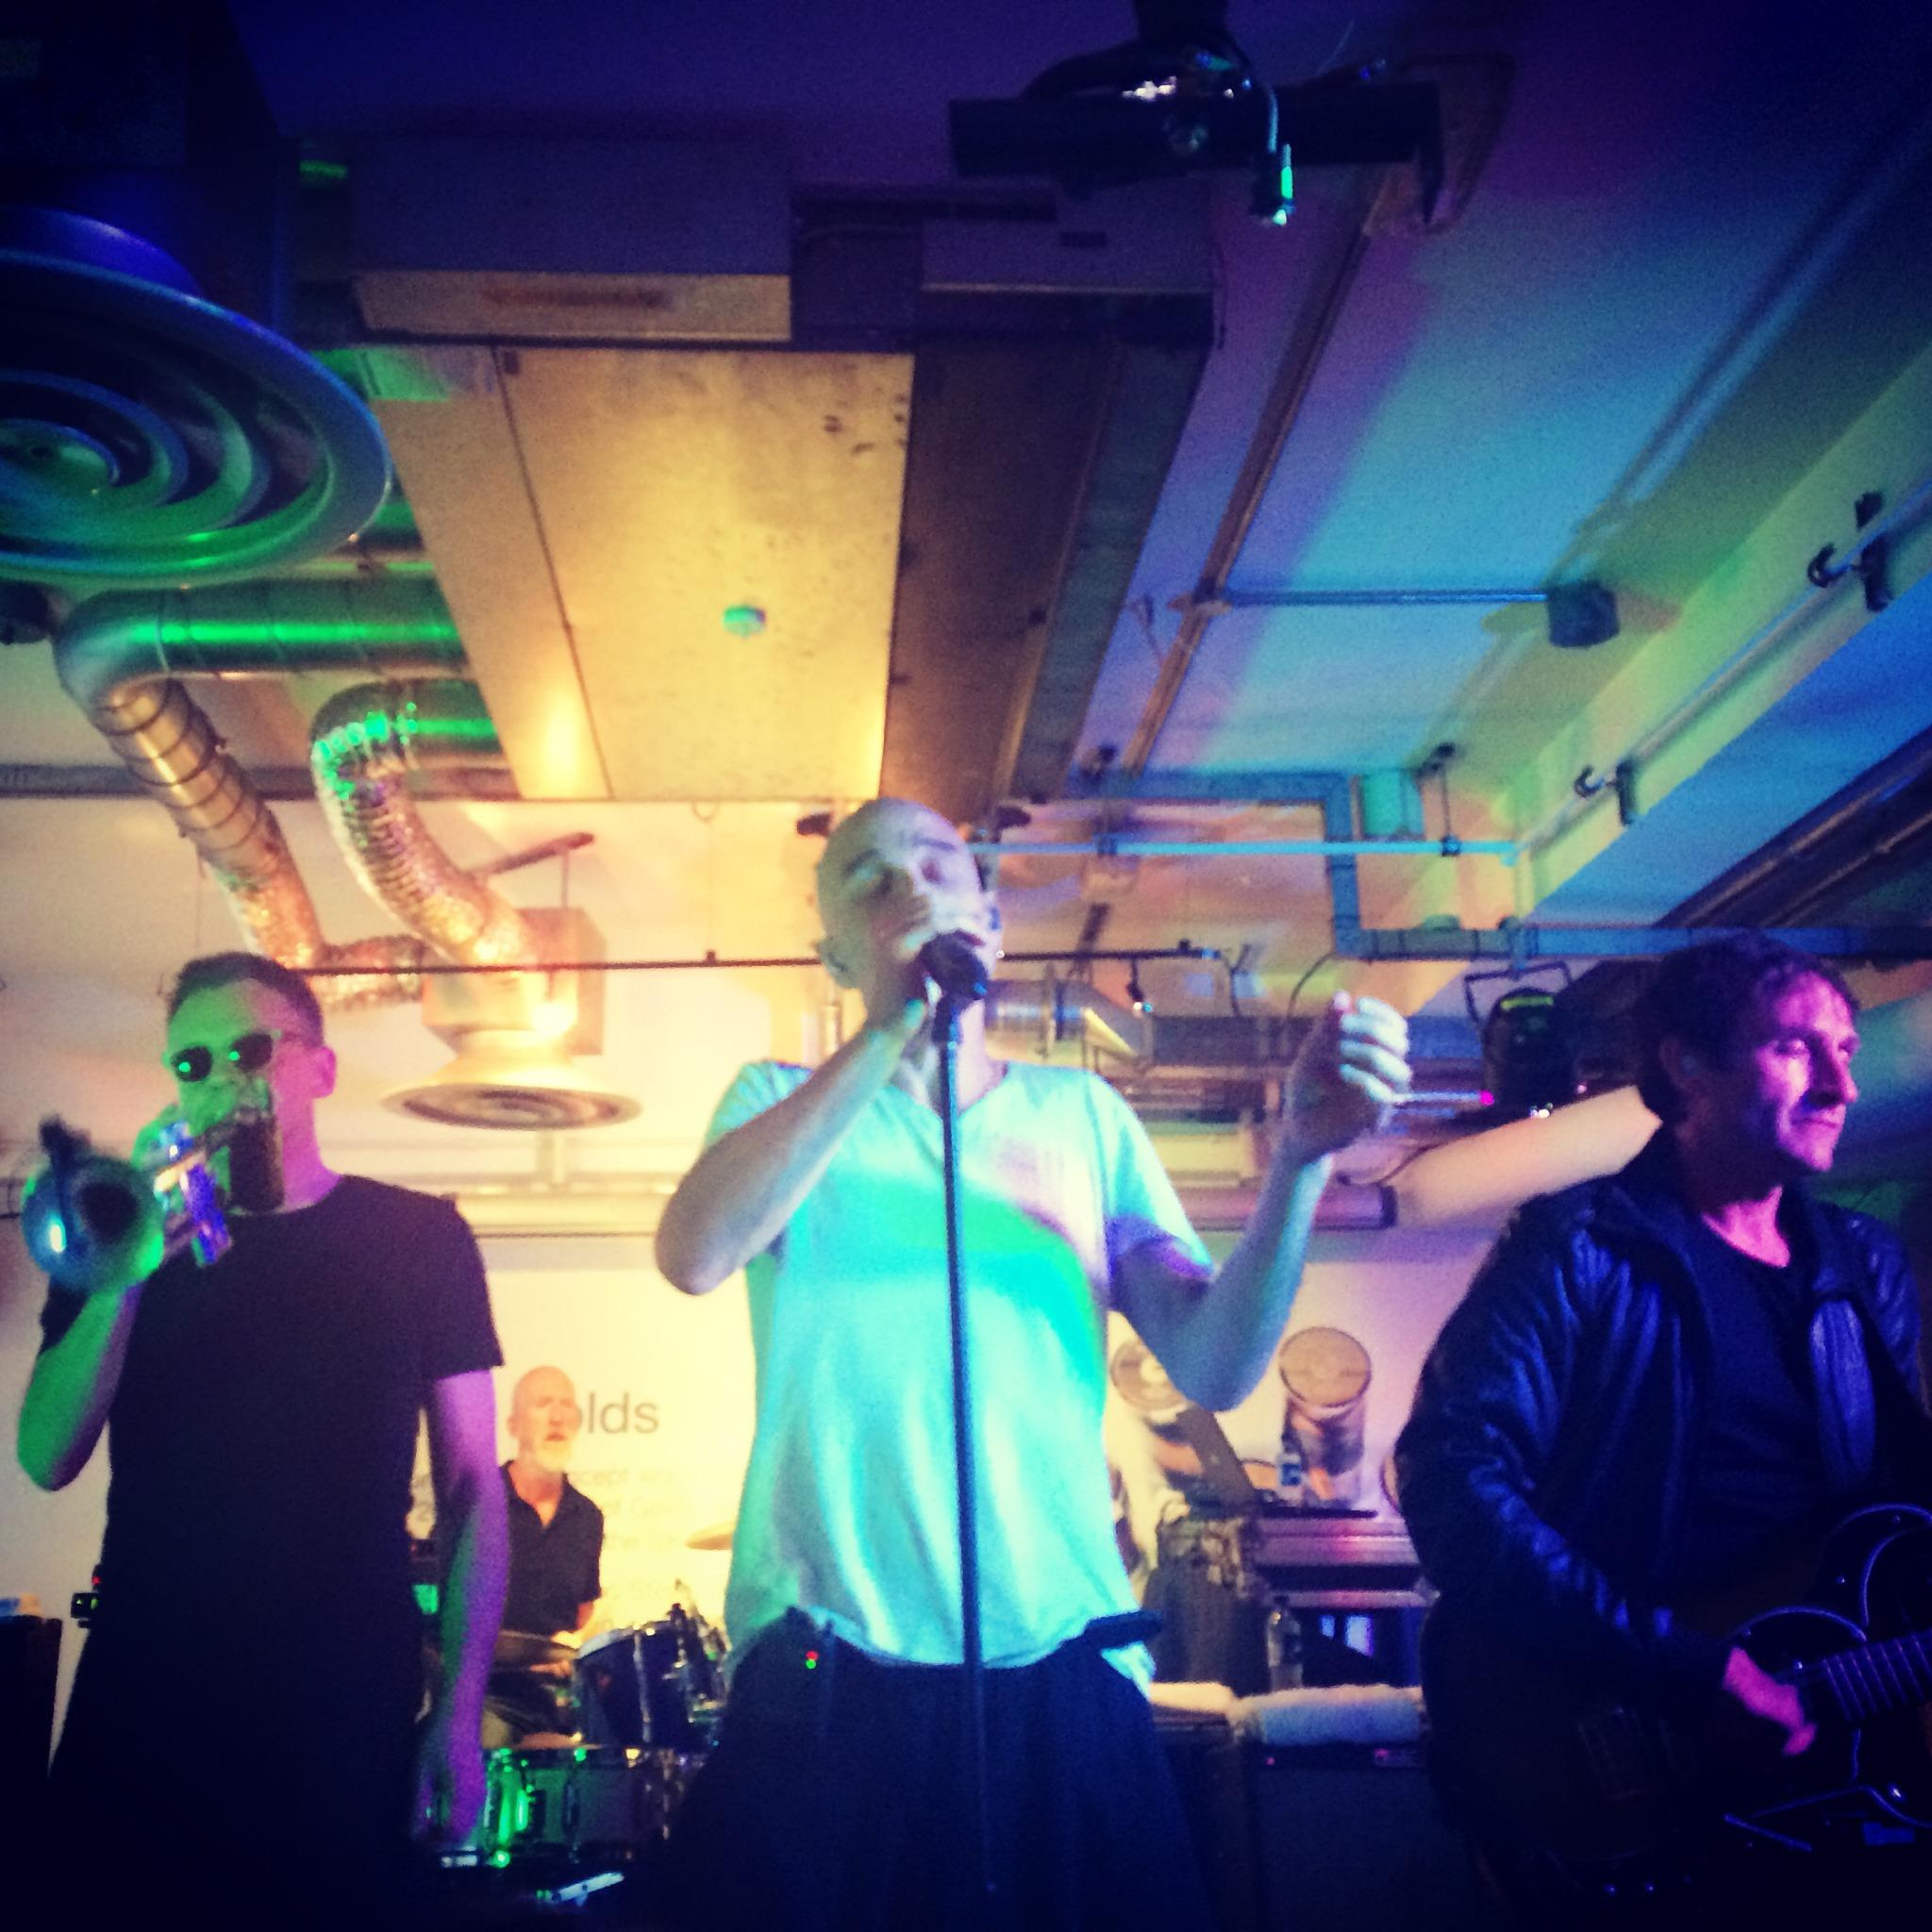 Best. Gig. Ever. Huge thanks to @wearejames for a totally unforgettable night! #TBWAsessions http://t.co/SYTq8kqt4n